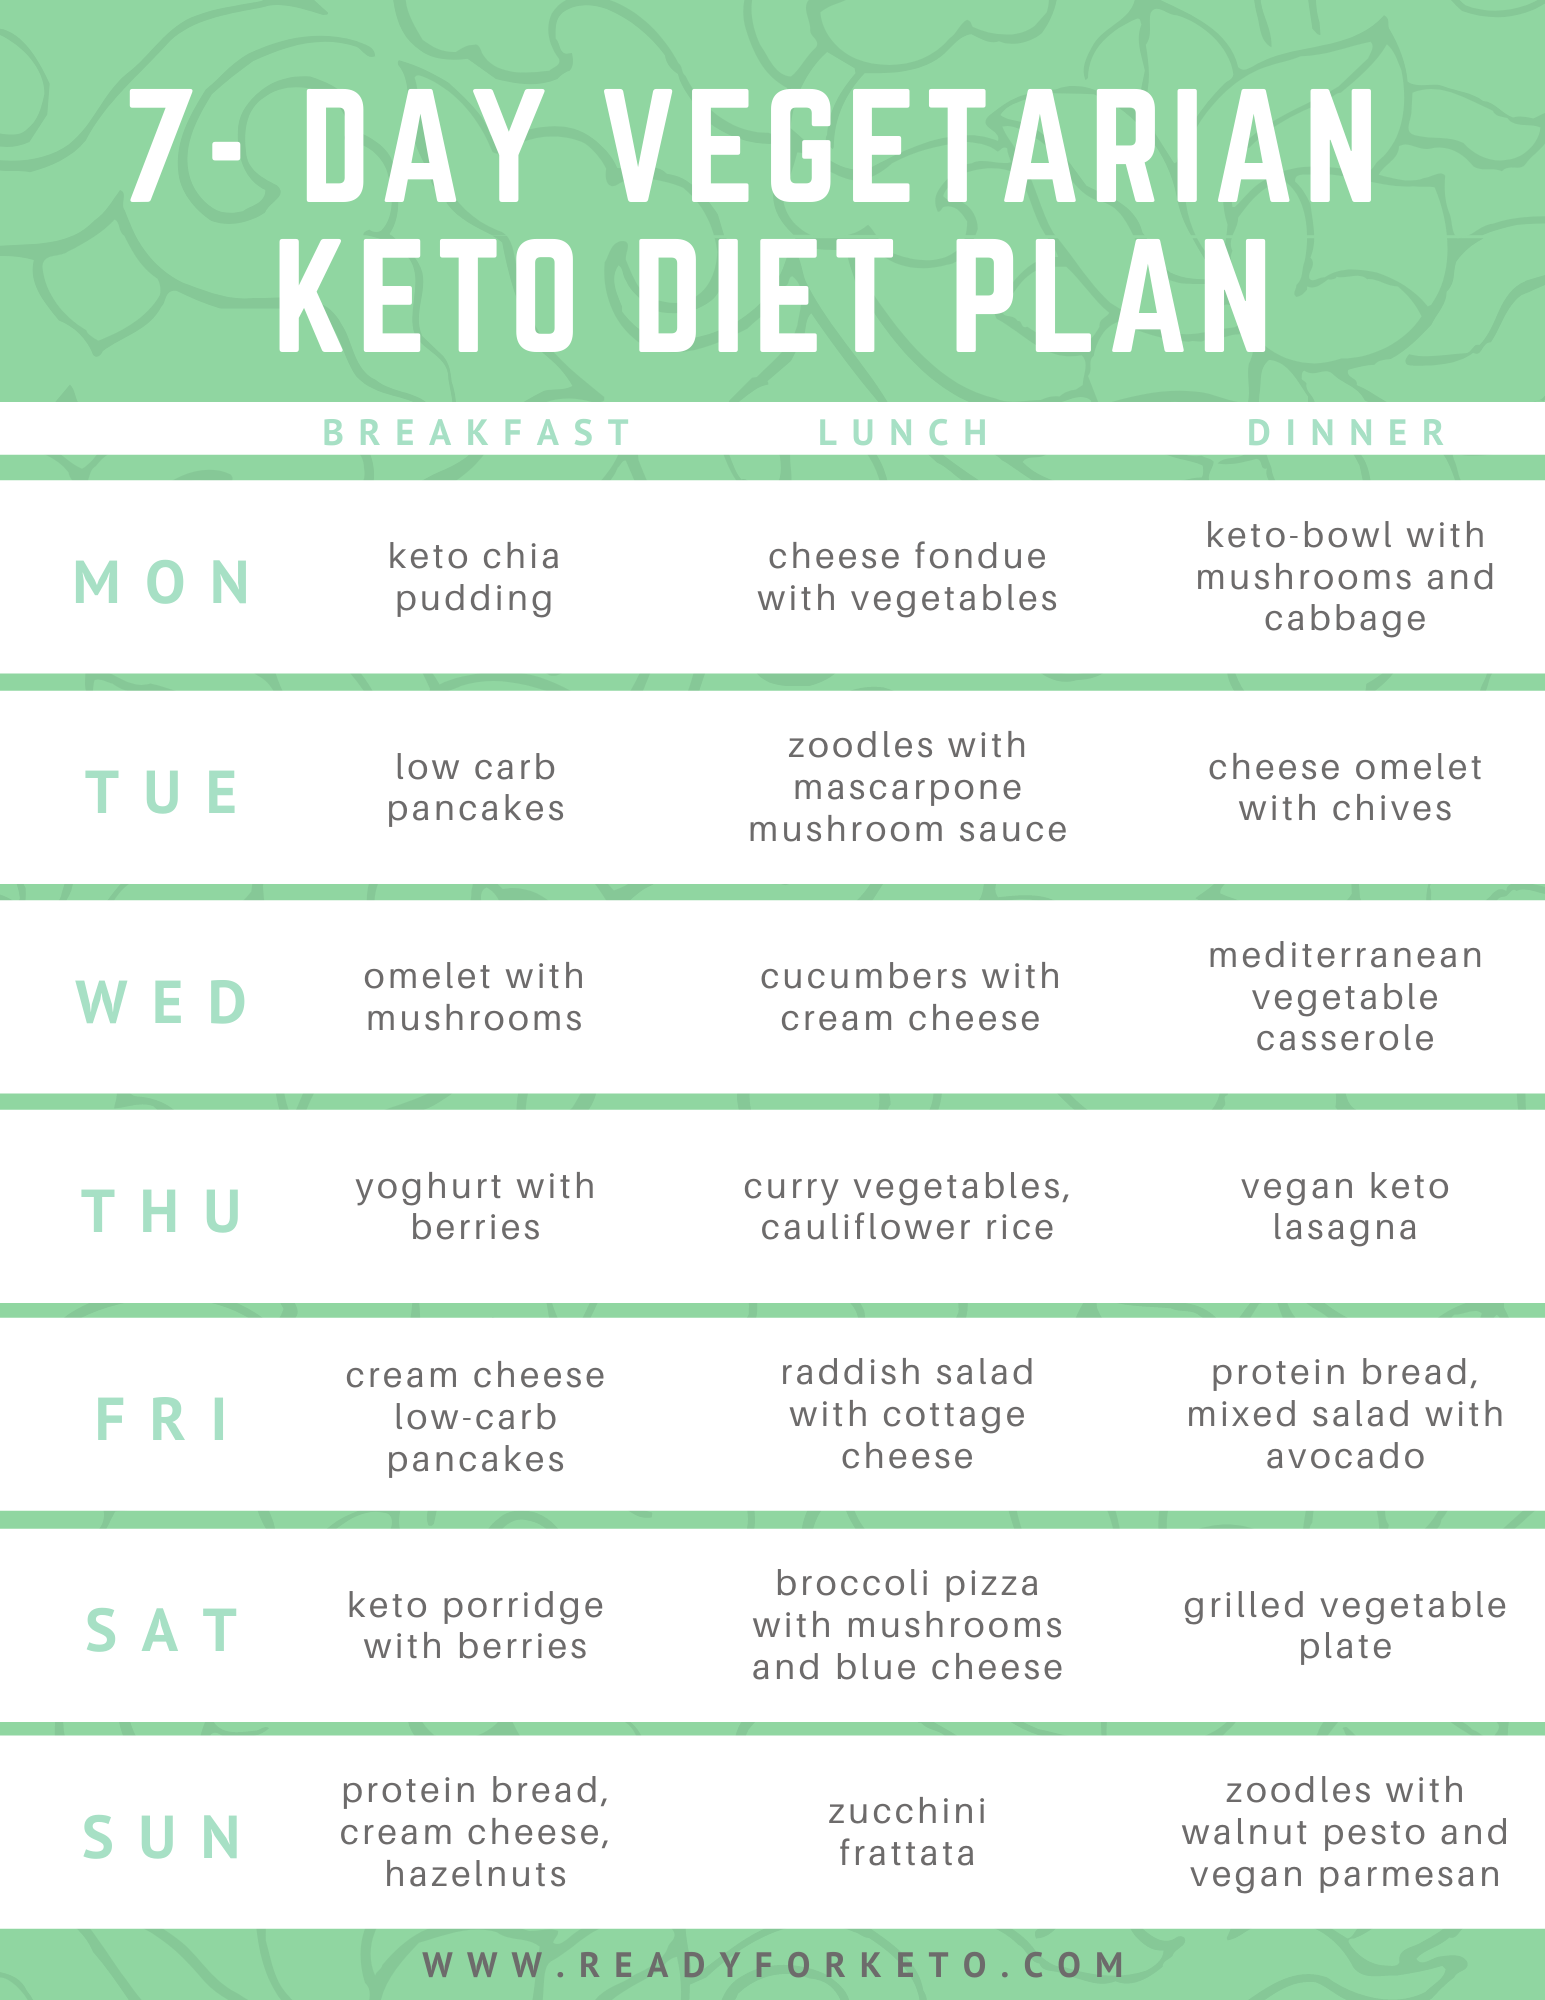 Pin On Keto Diet Ready For Keto